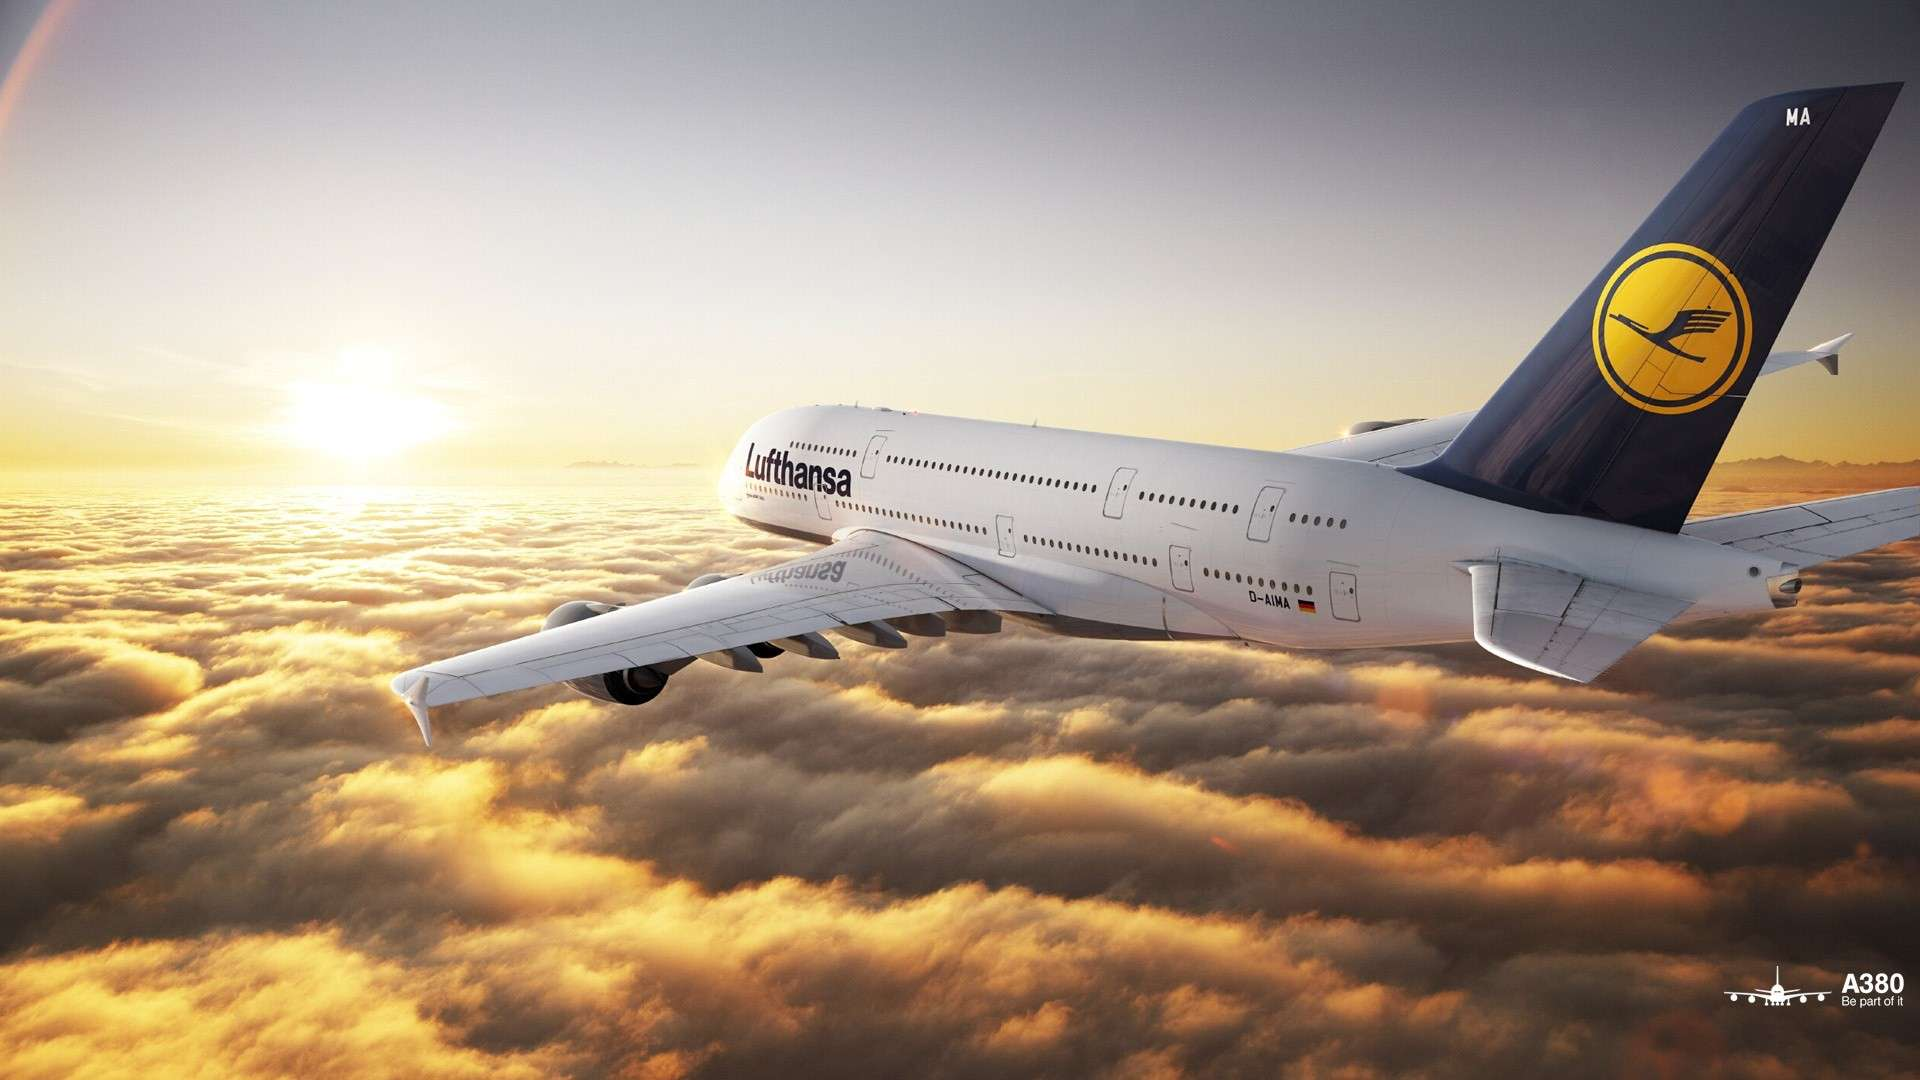 A380 Lufthansa Sunset HD Wallpaper FullHDWpp   Full HD Wallpapers 1920x1080